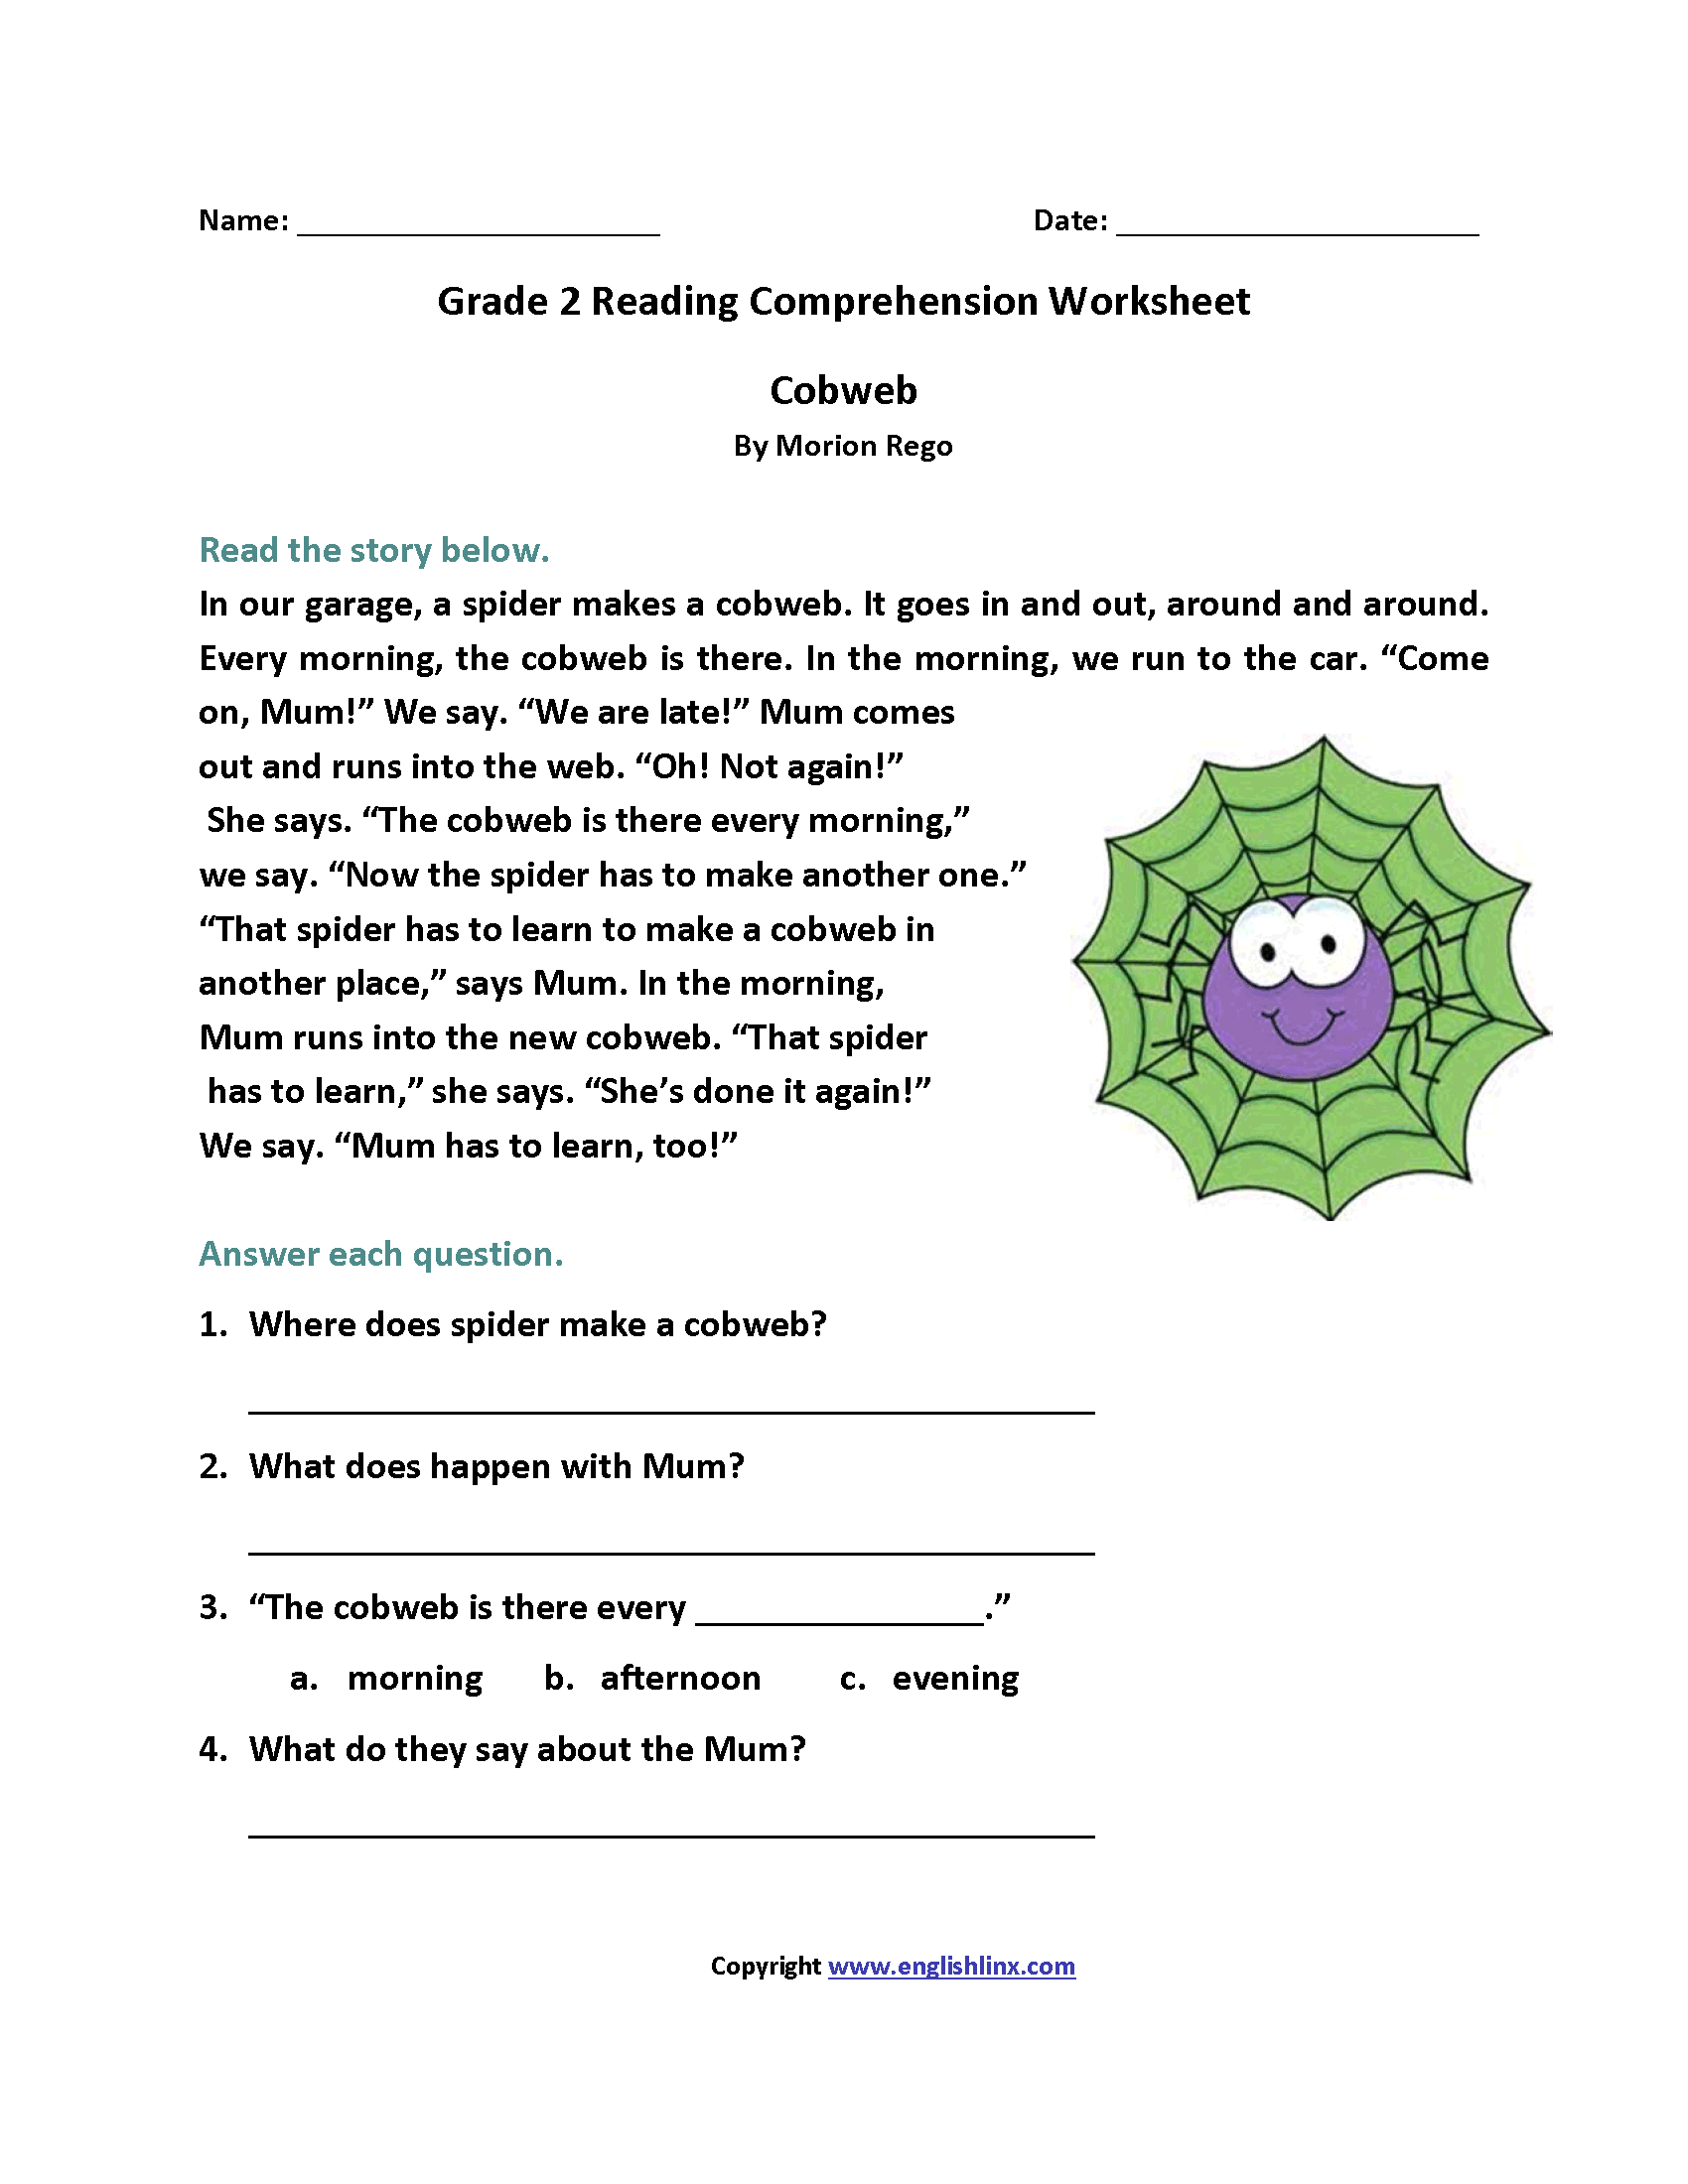 Cobweb Second Grade Reading Worksheets With Images